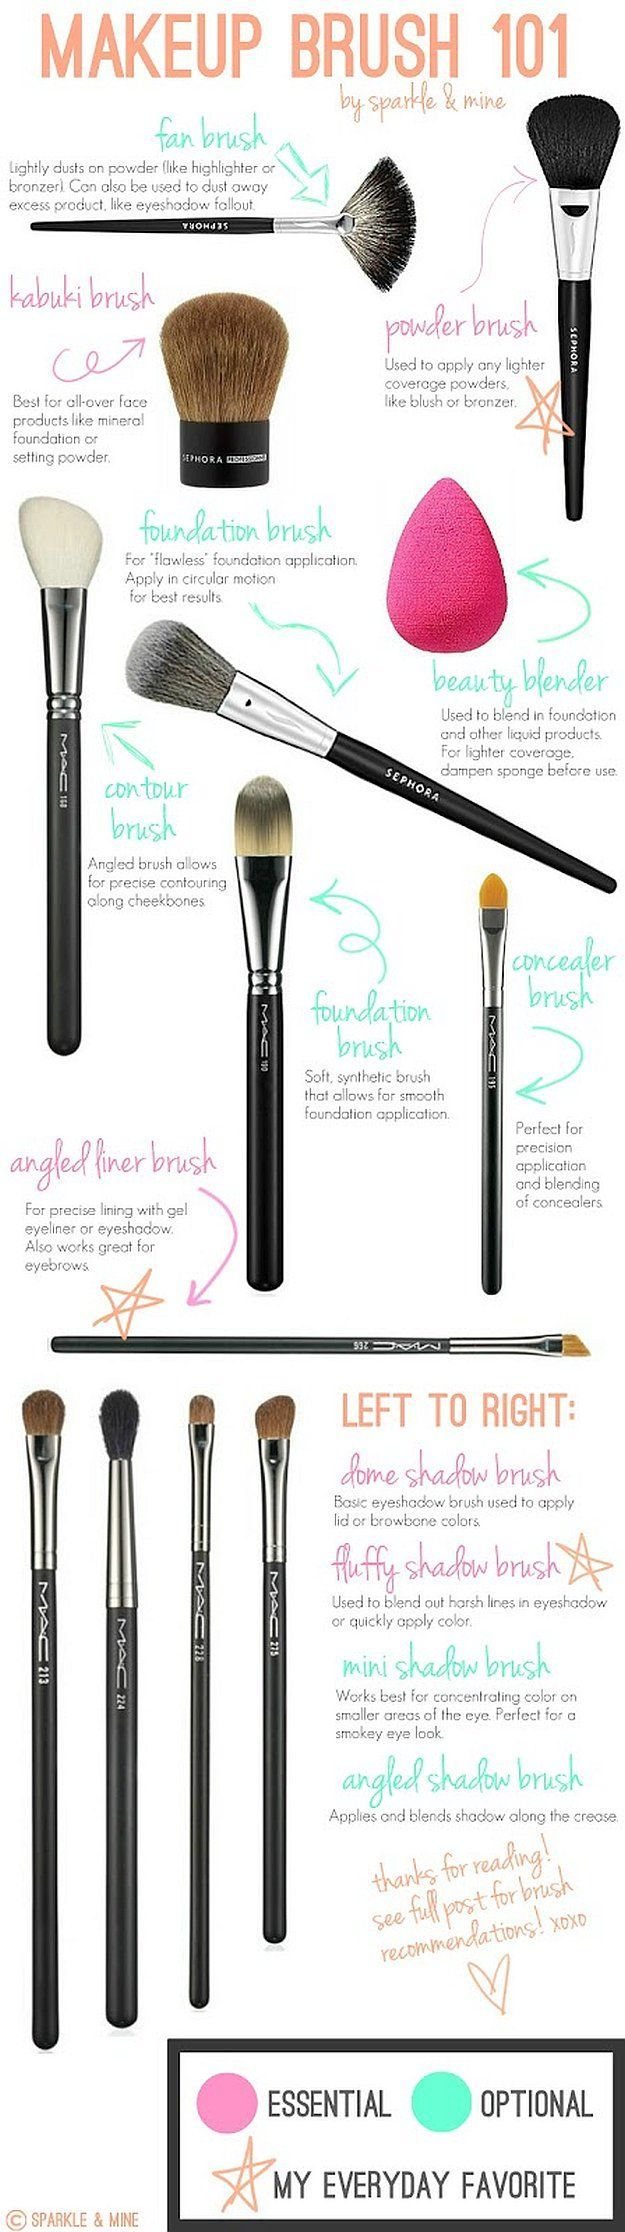 Which Makeup Brushes are Essential & How to Care for Them, check it out at makeu...